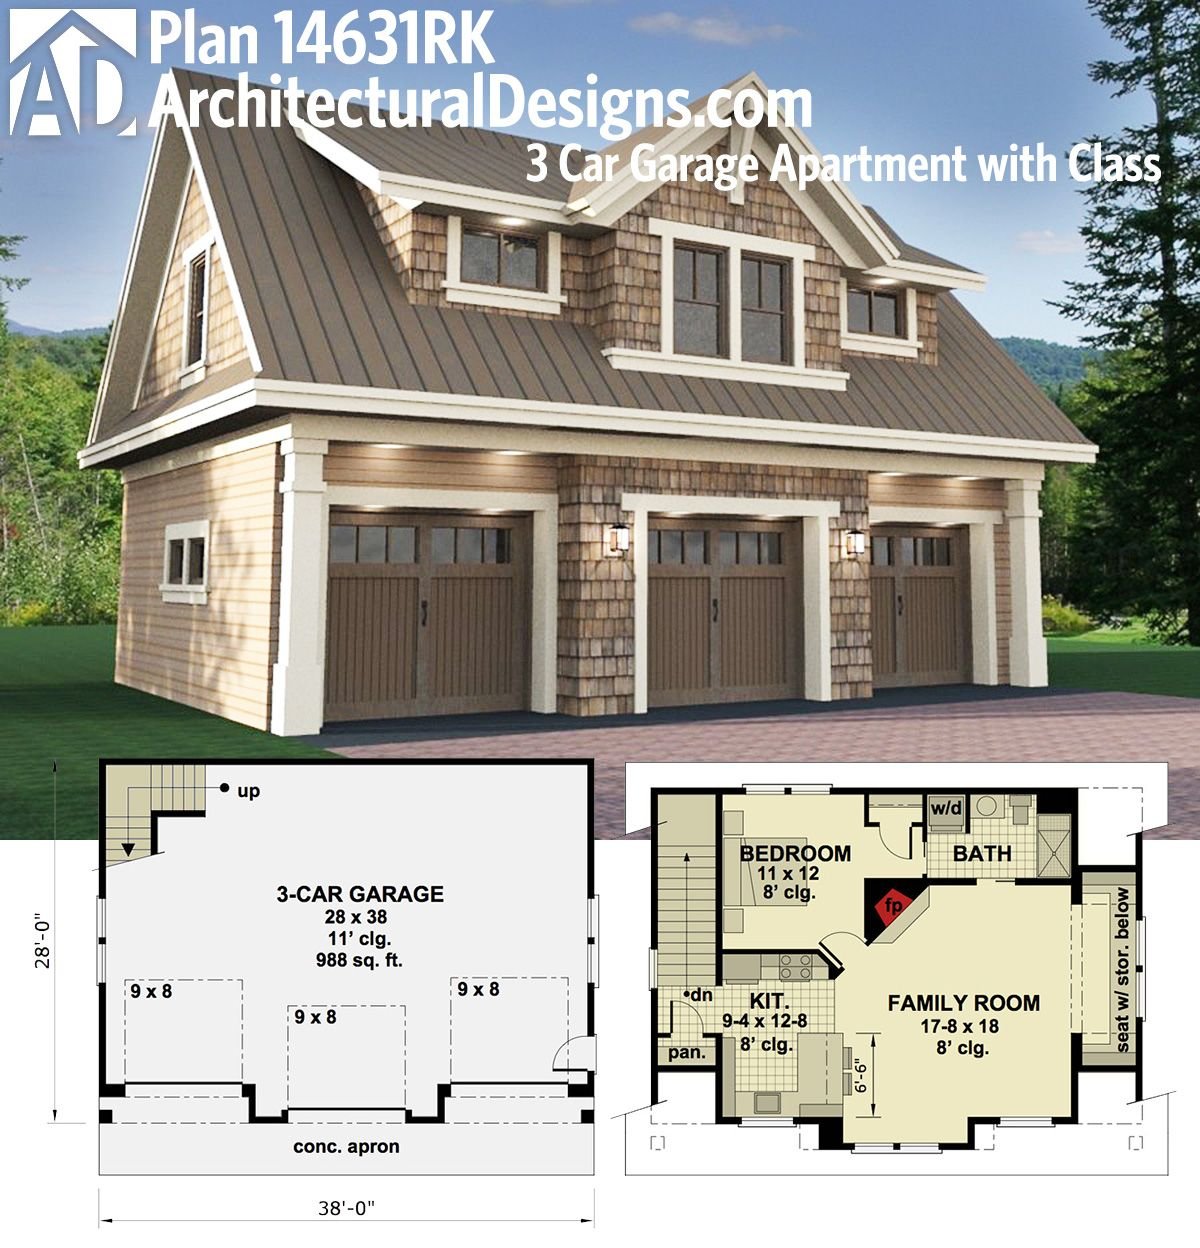 Plan 14631RK: 3 Car Garage Apartment with Class | Carriage house ...